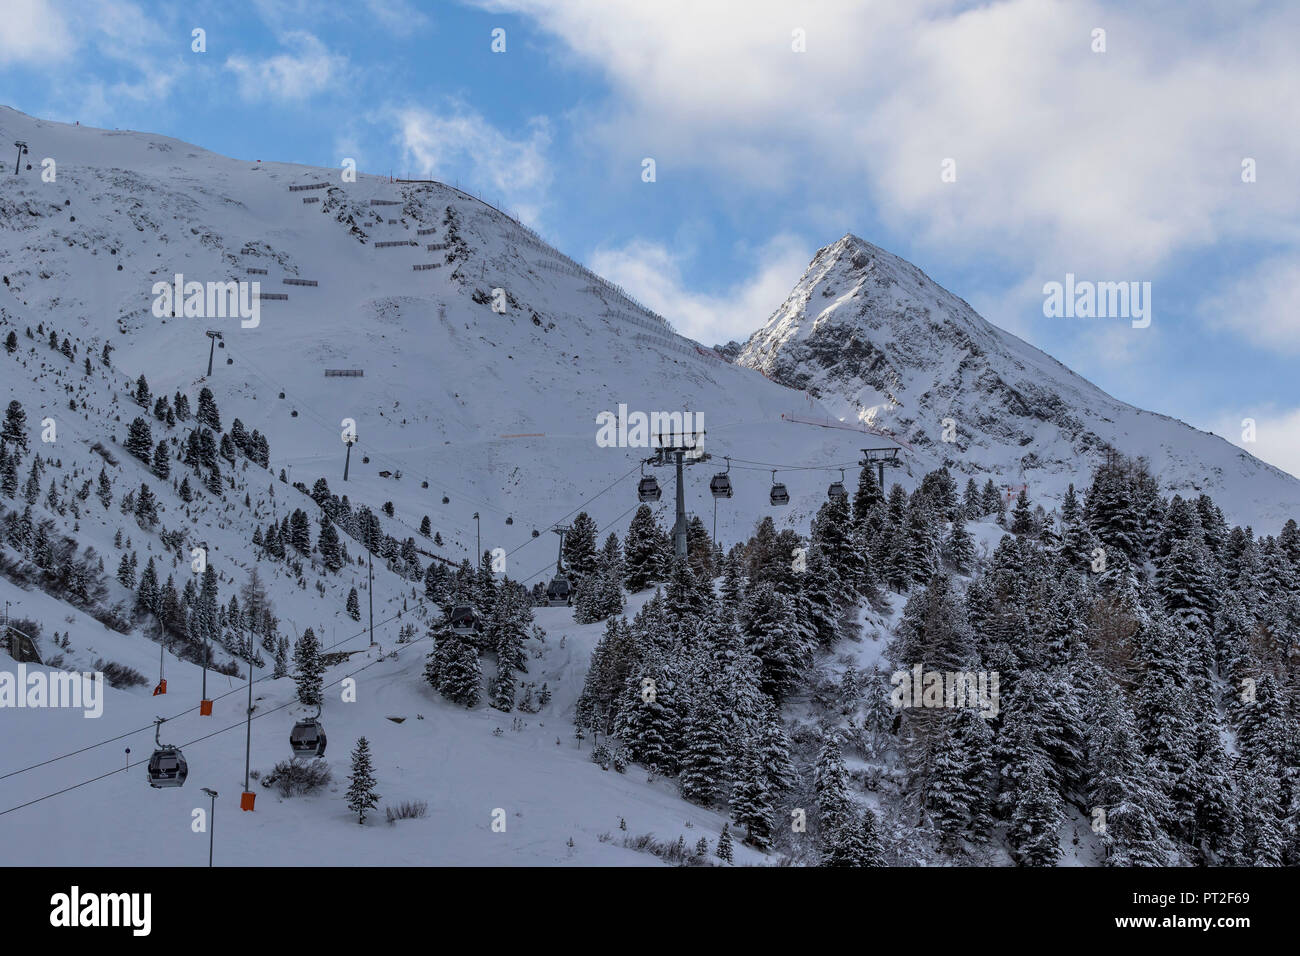 Europe, Austria, Tyrol, Ötztal, Obergurgl, view of the Obergurgl ski area and the mighty Hangerer in the background - Stock Image